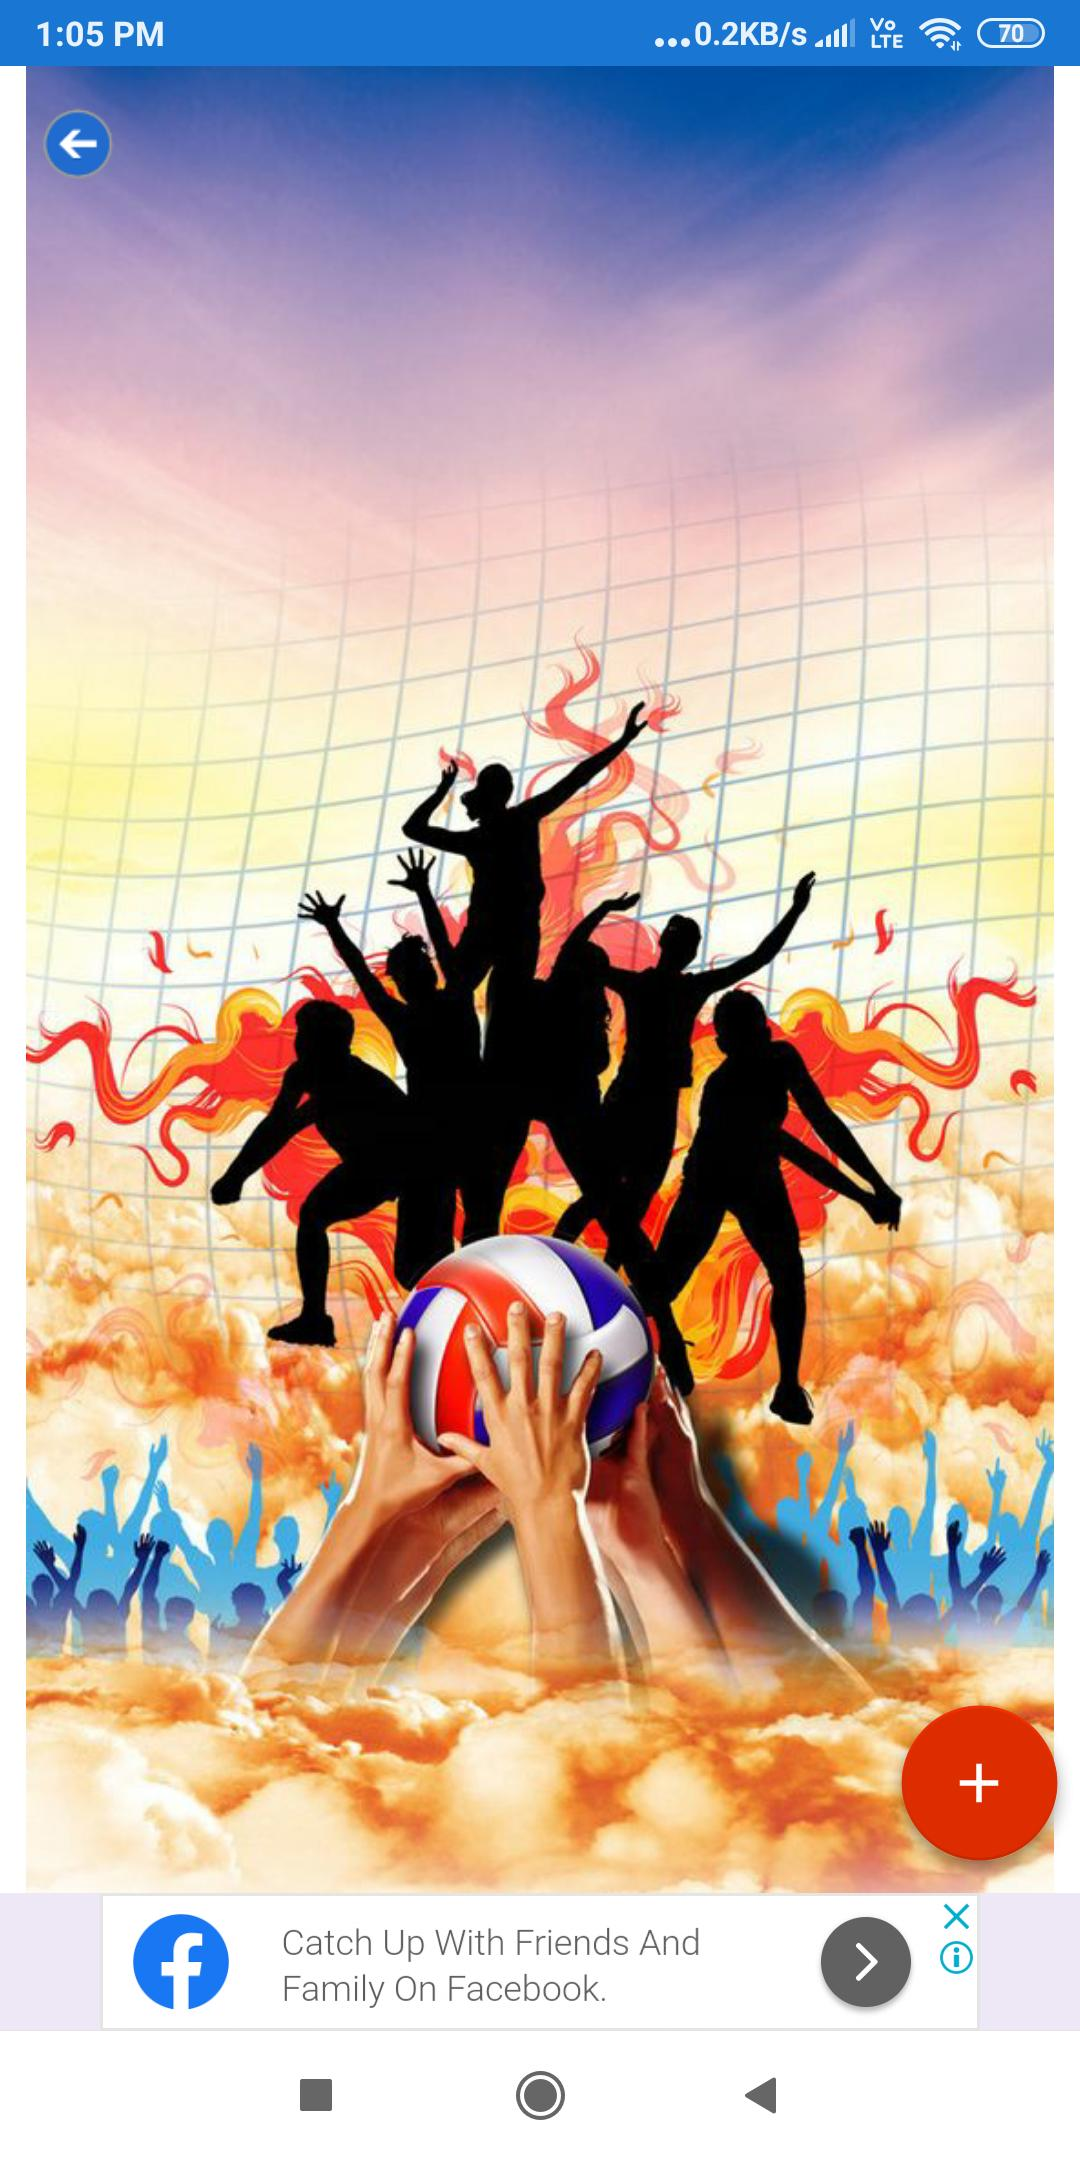 Volleyball Wallpapers Hd Images Free Download For Android Apk Download